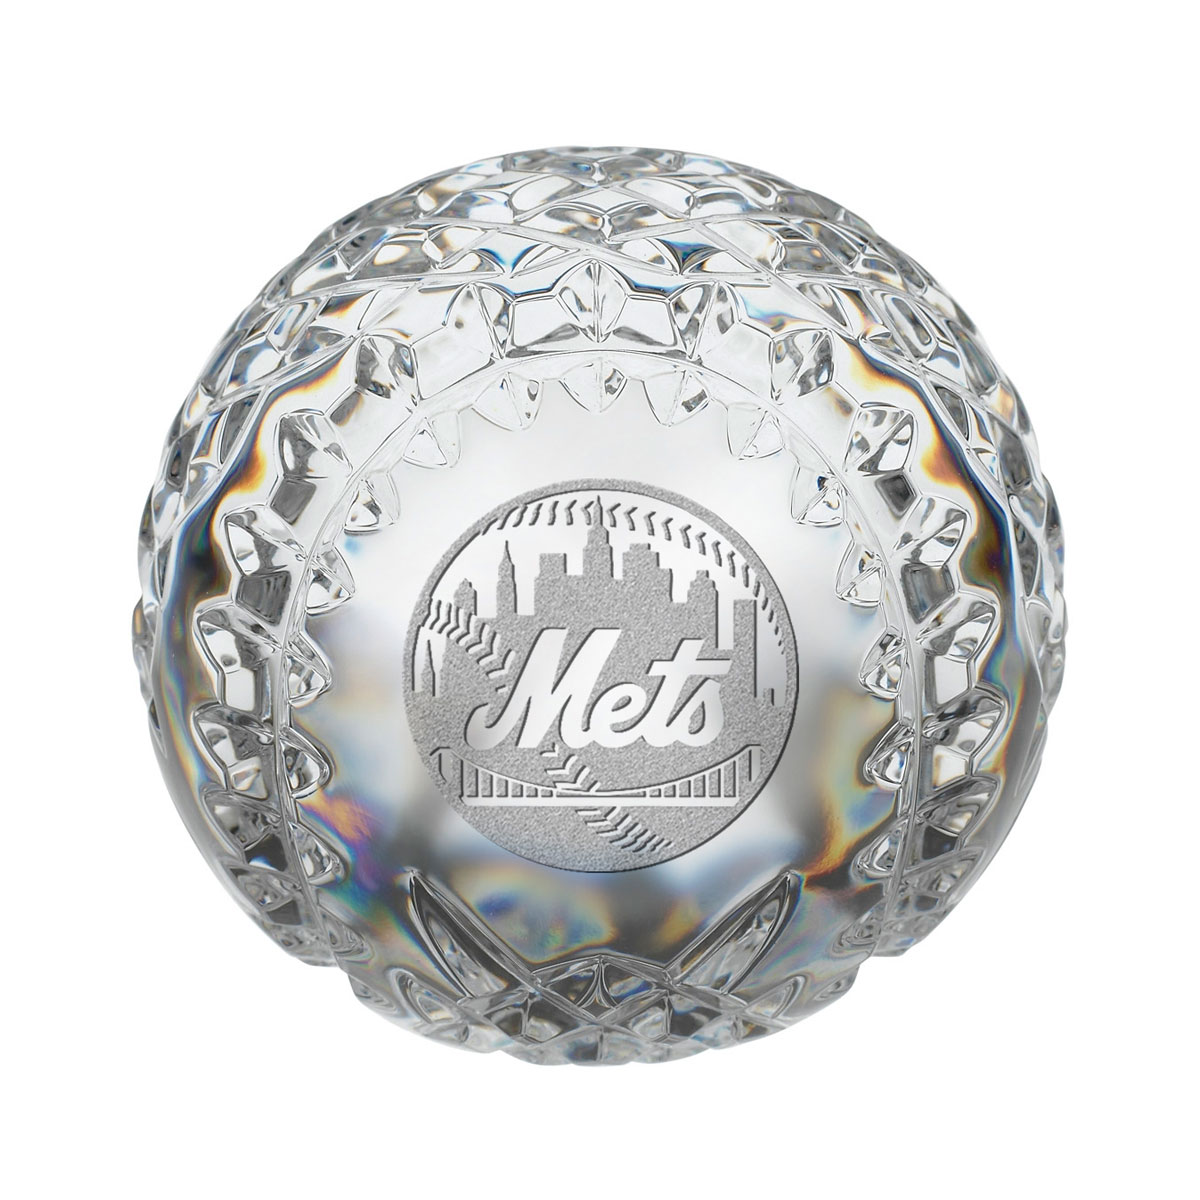 Waterford MLB New York Mets Crystal Baseball Paperweight